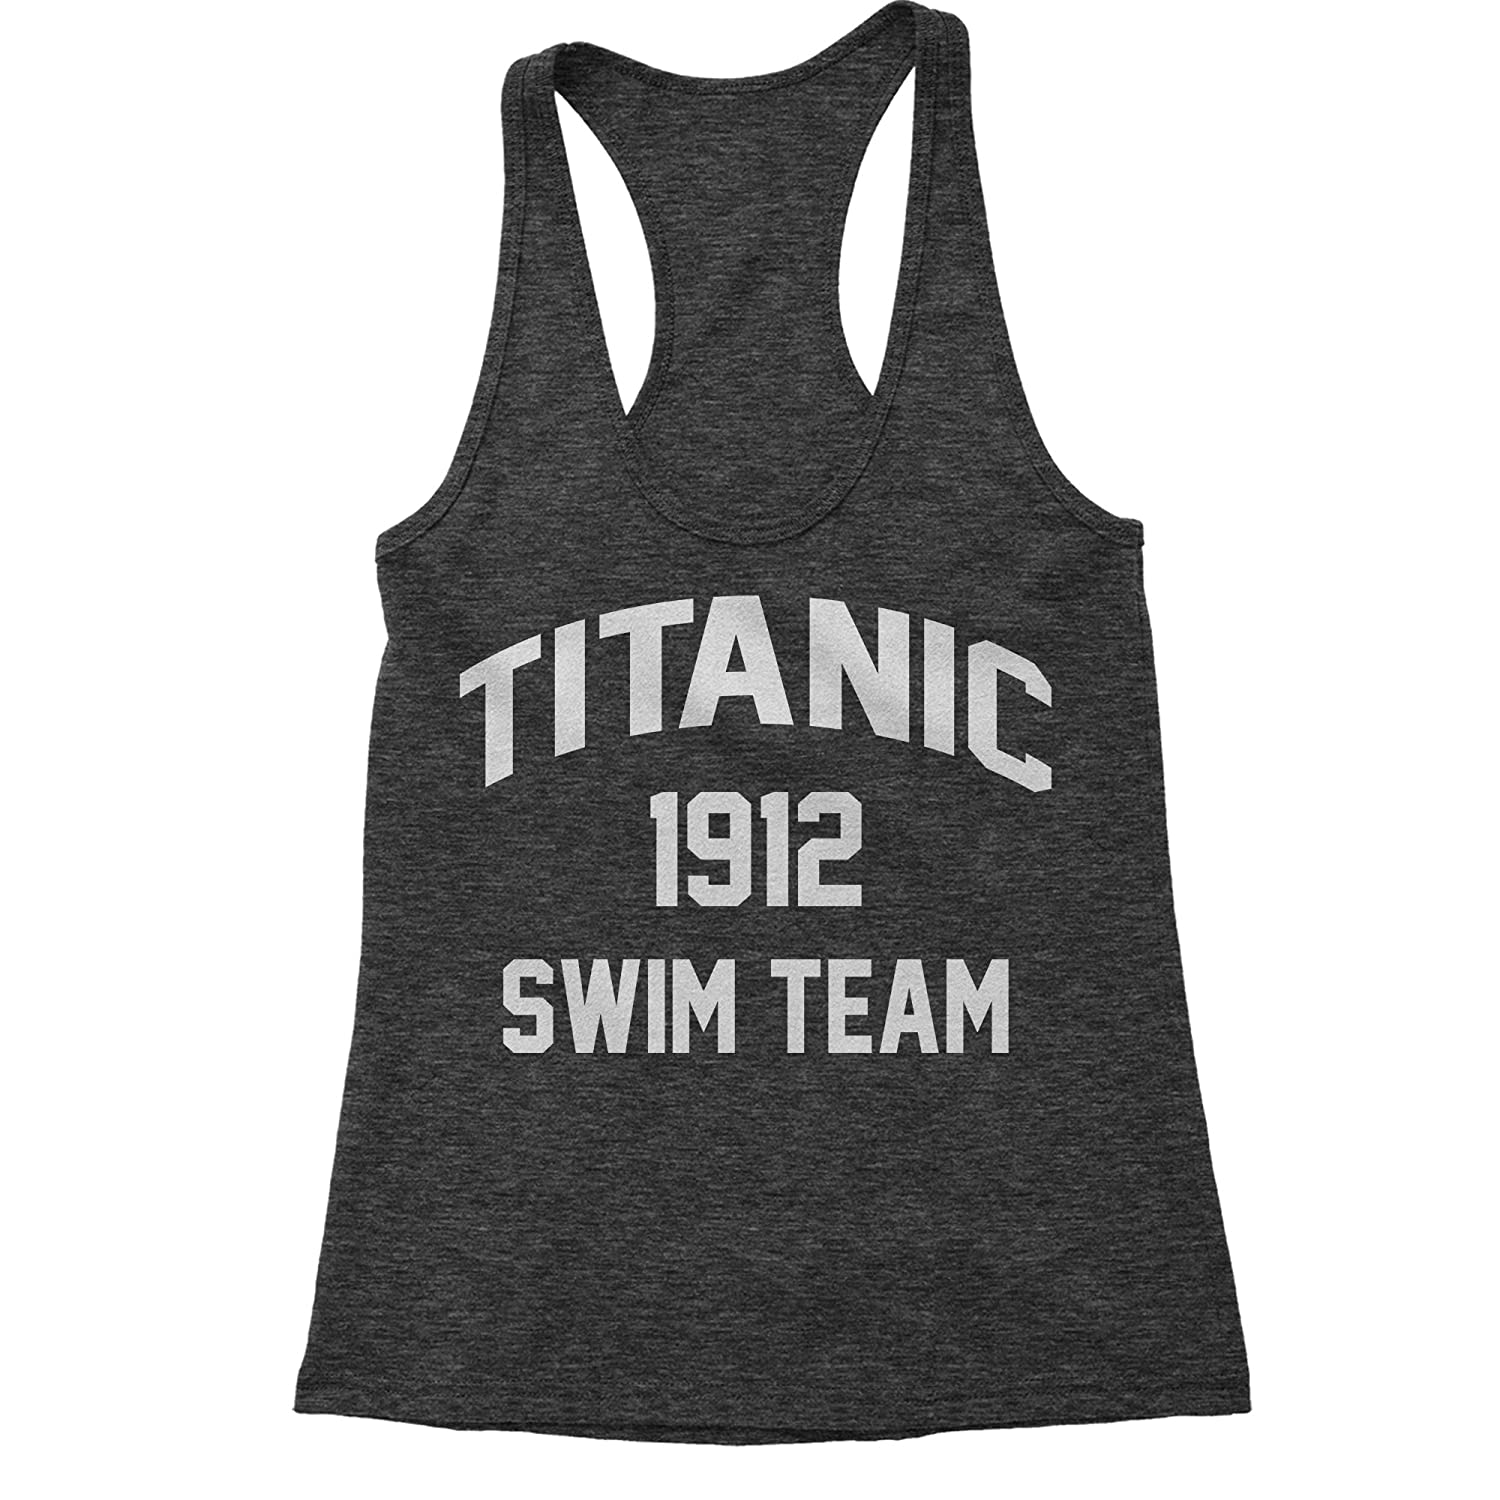 Expression Tees Titanic Swim Team 1912 Triblend Racerback Tank Top for Women 1059-R